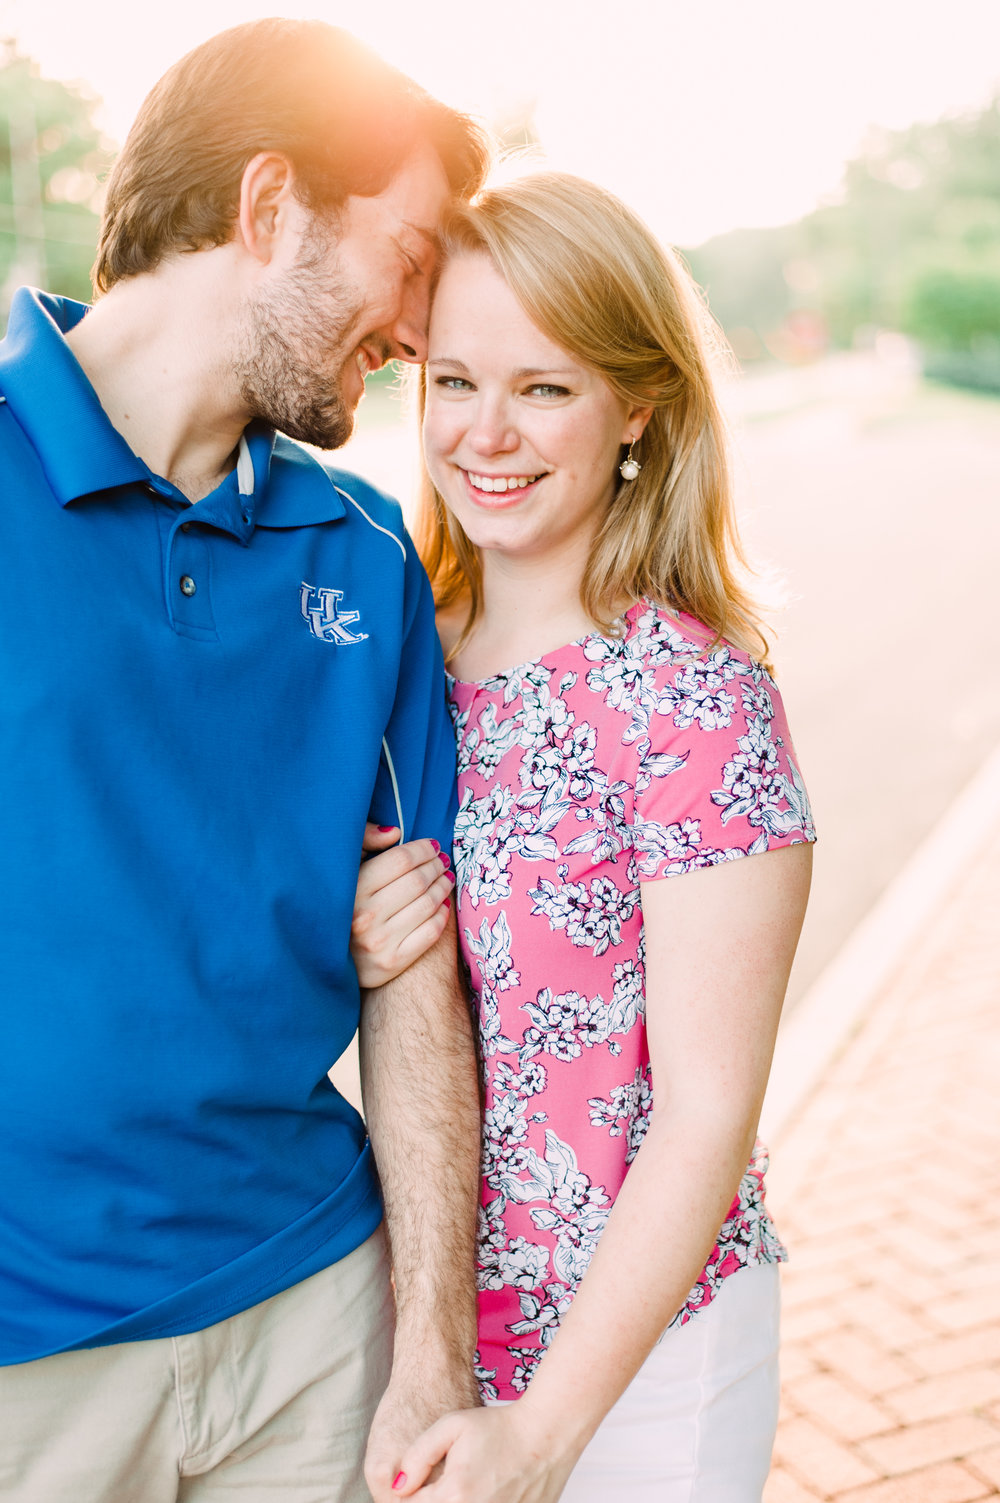 Annie + Andrew Engagement Blog Post-23.JPG